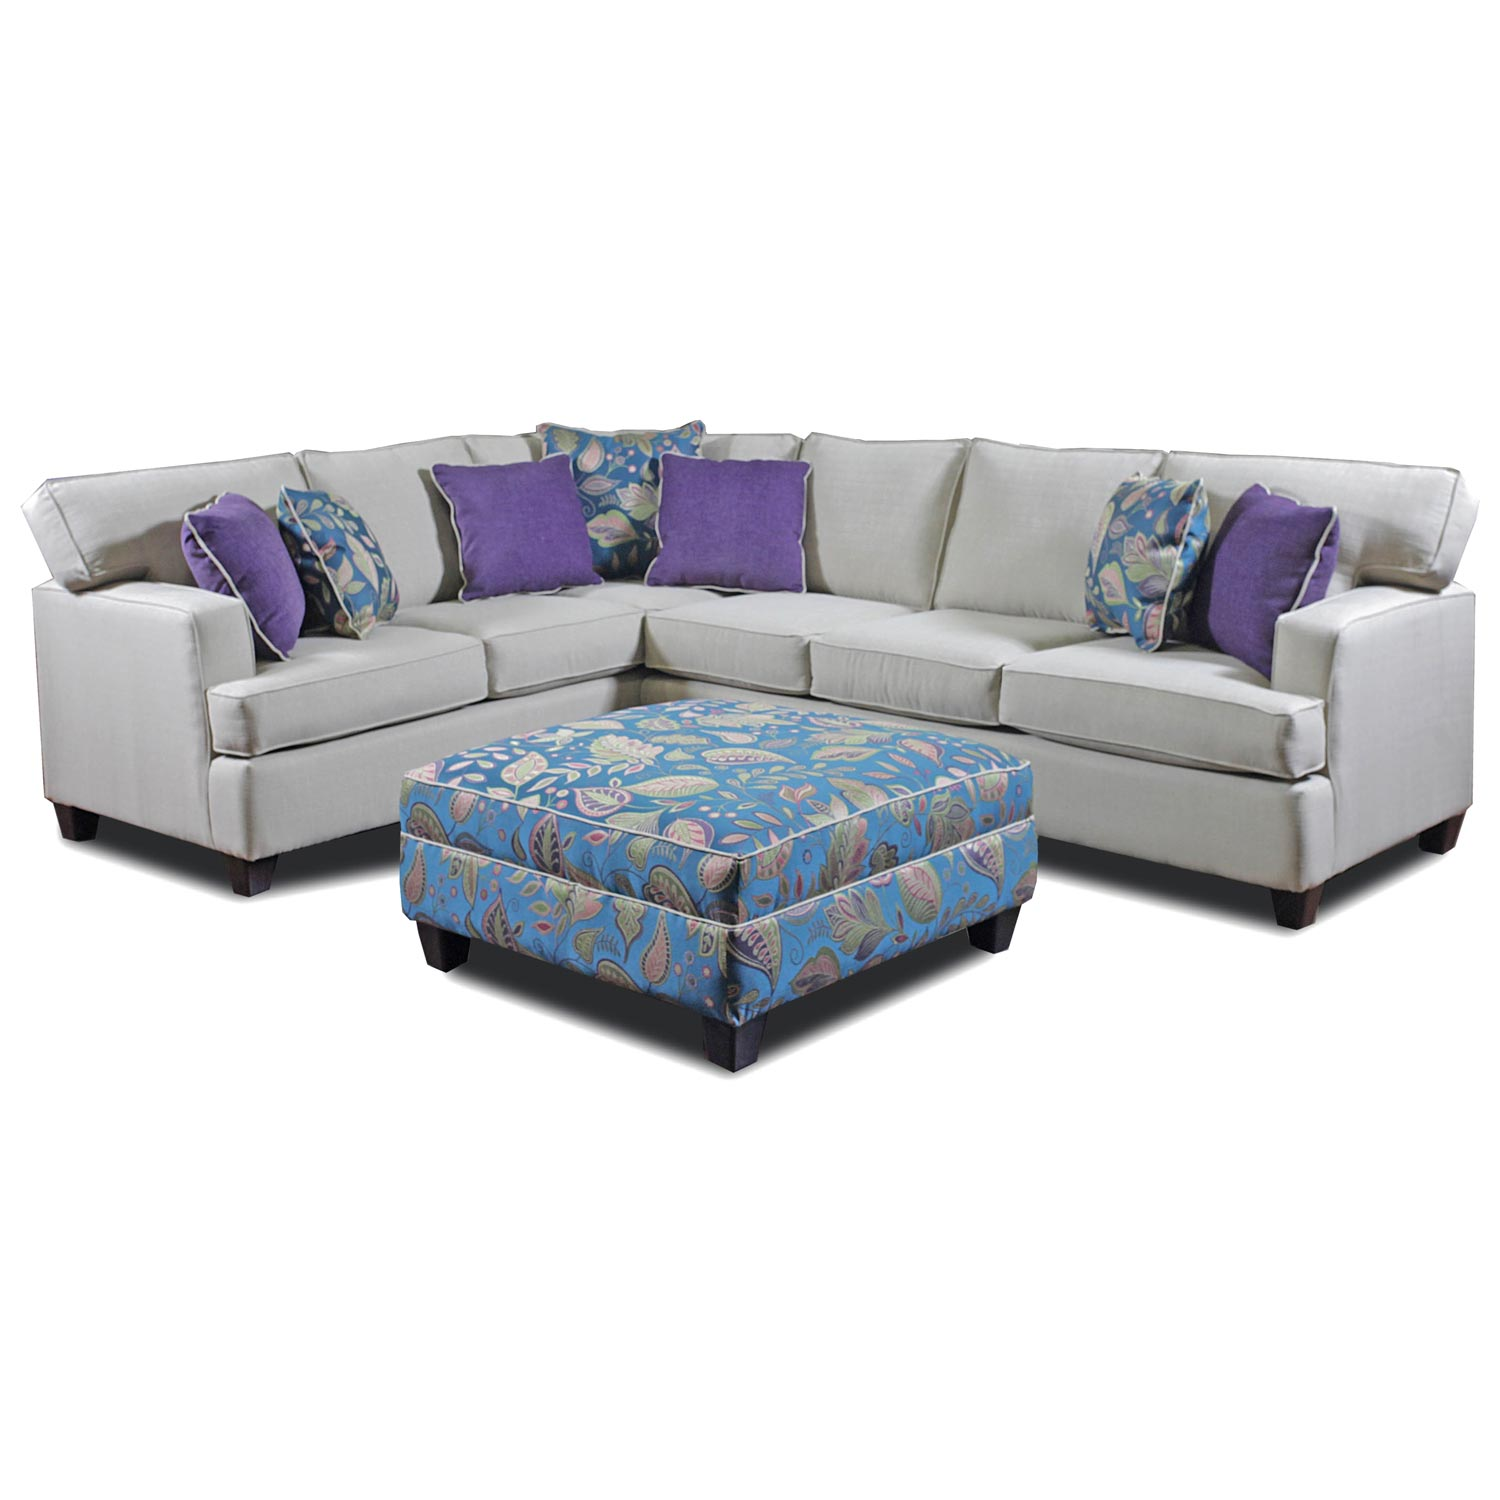 Shawnee Sectional Sofa - Turnbridge Straw Fabric